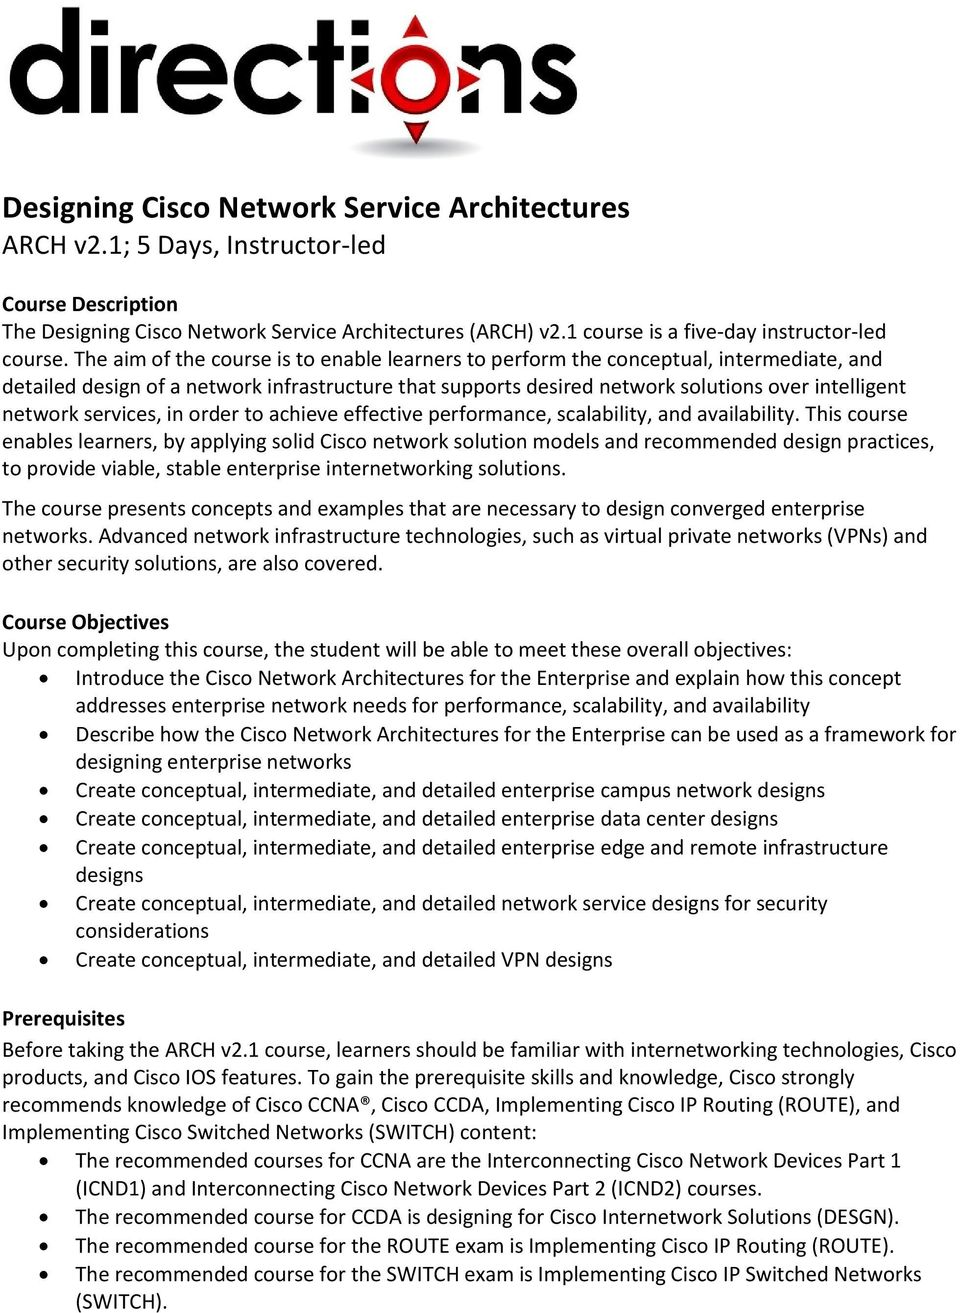 The aim of the course is to enable learners to perform the conceptual, intermediate, and detailed design of a network infrastructure that supports desired network solutions over intelligent network